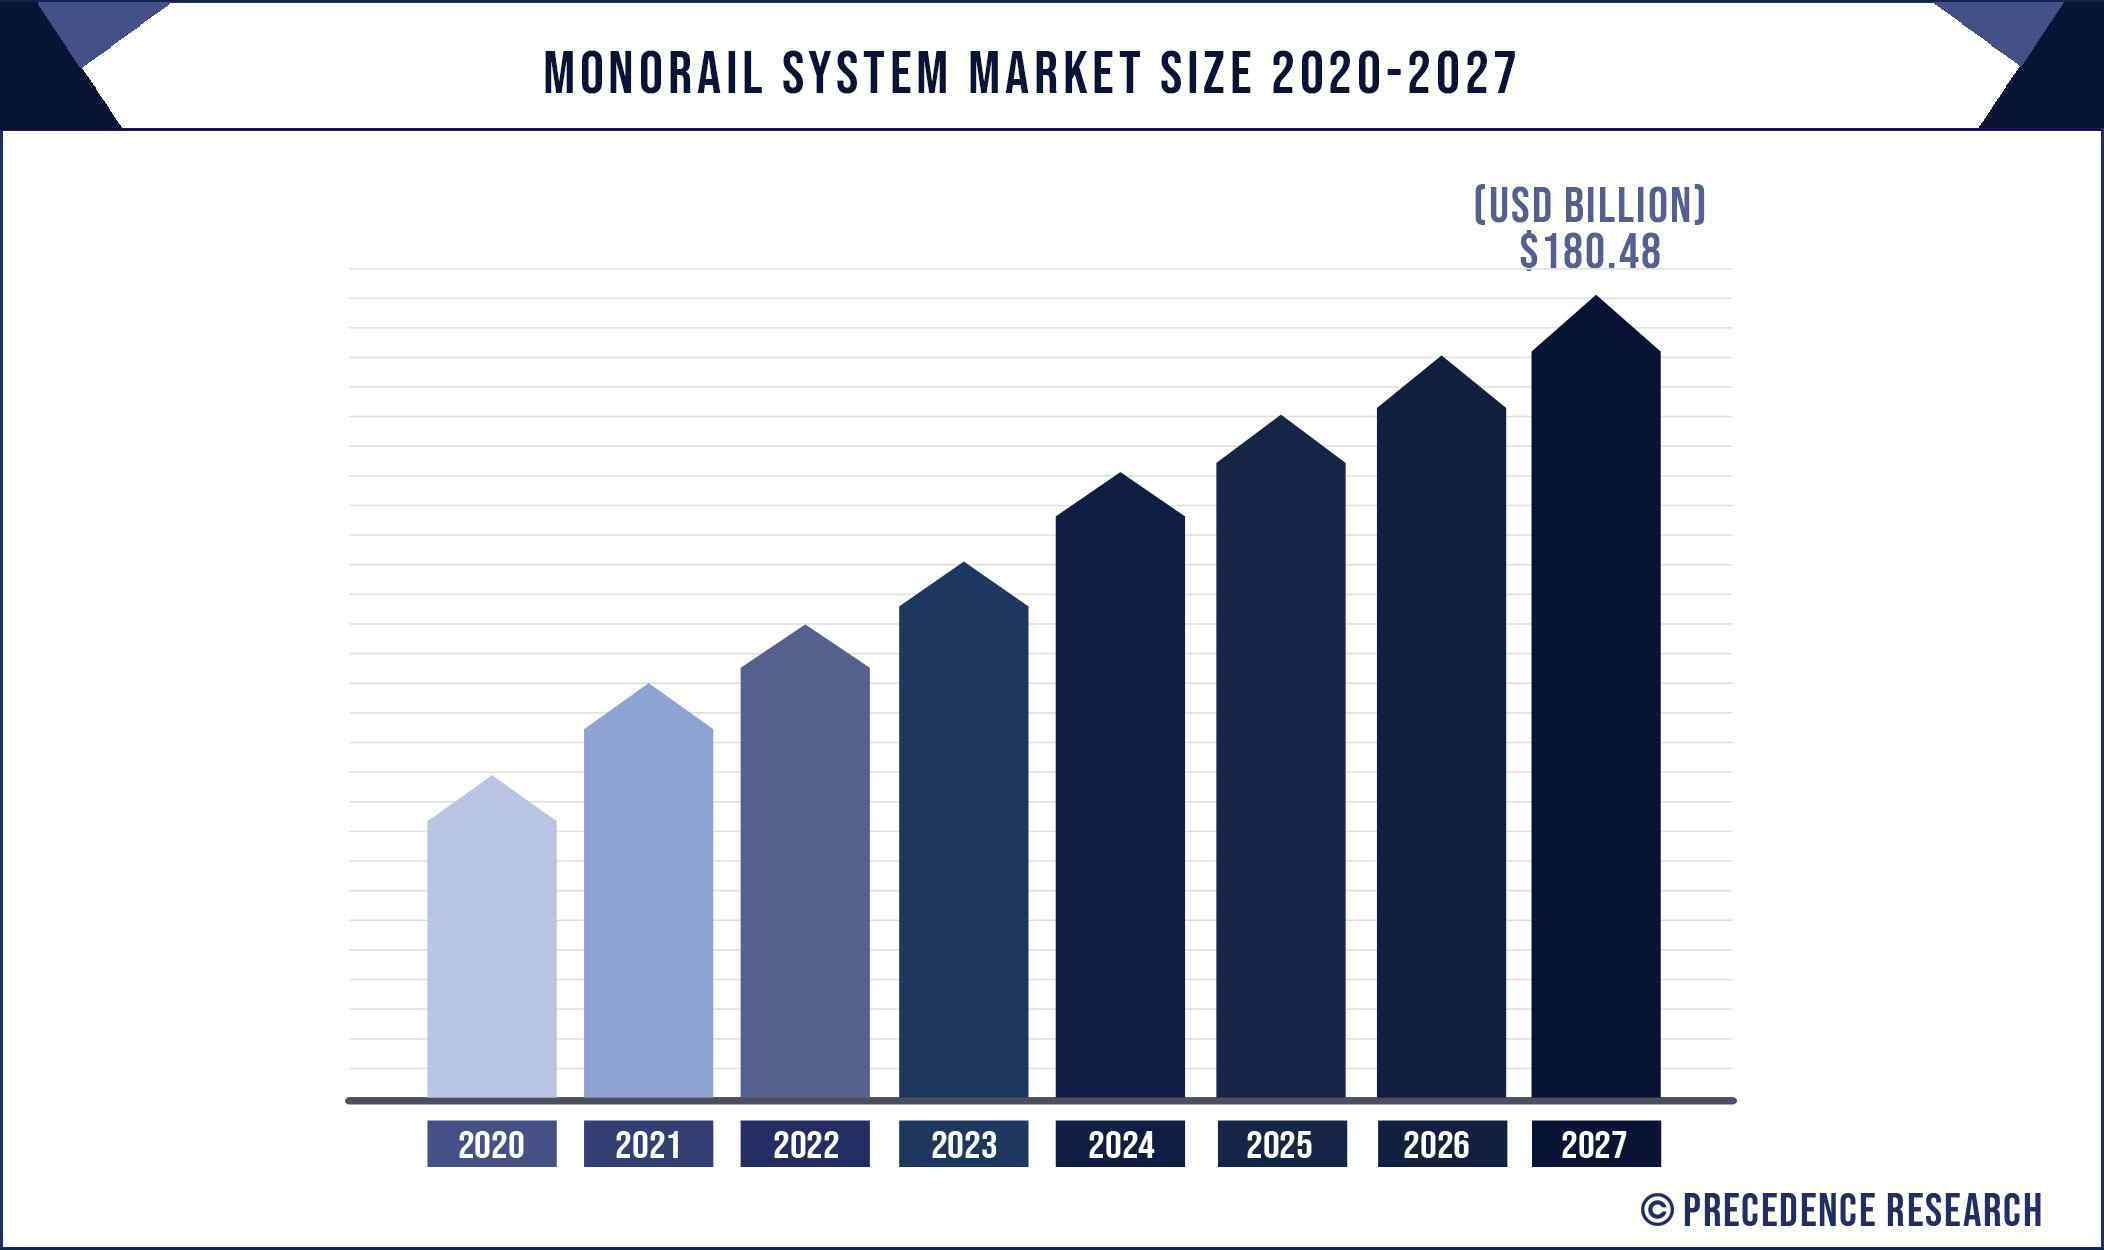 Monorail System Market Size 2020 to 2027